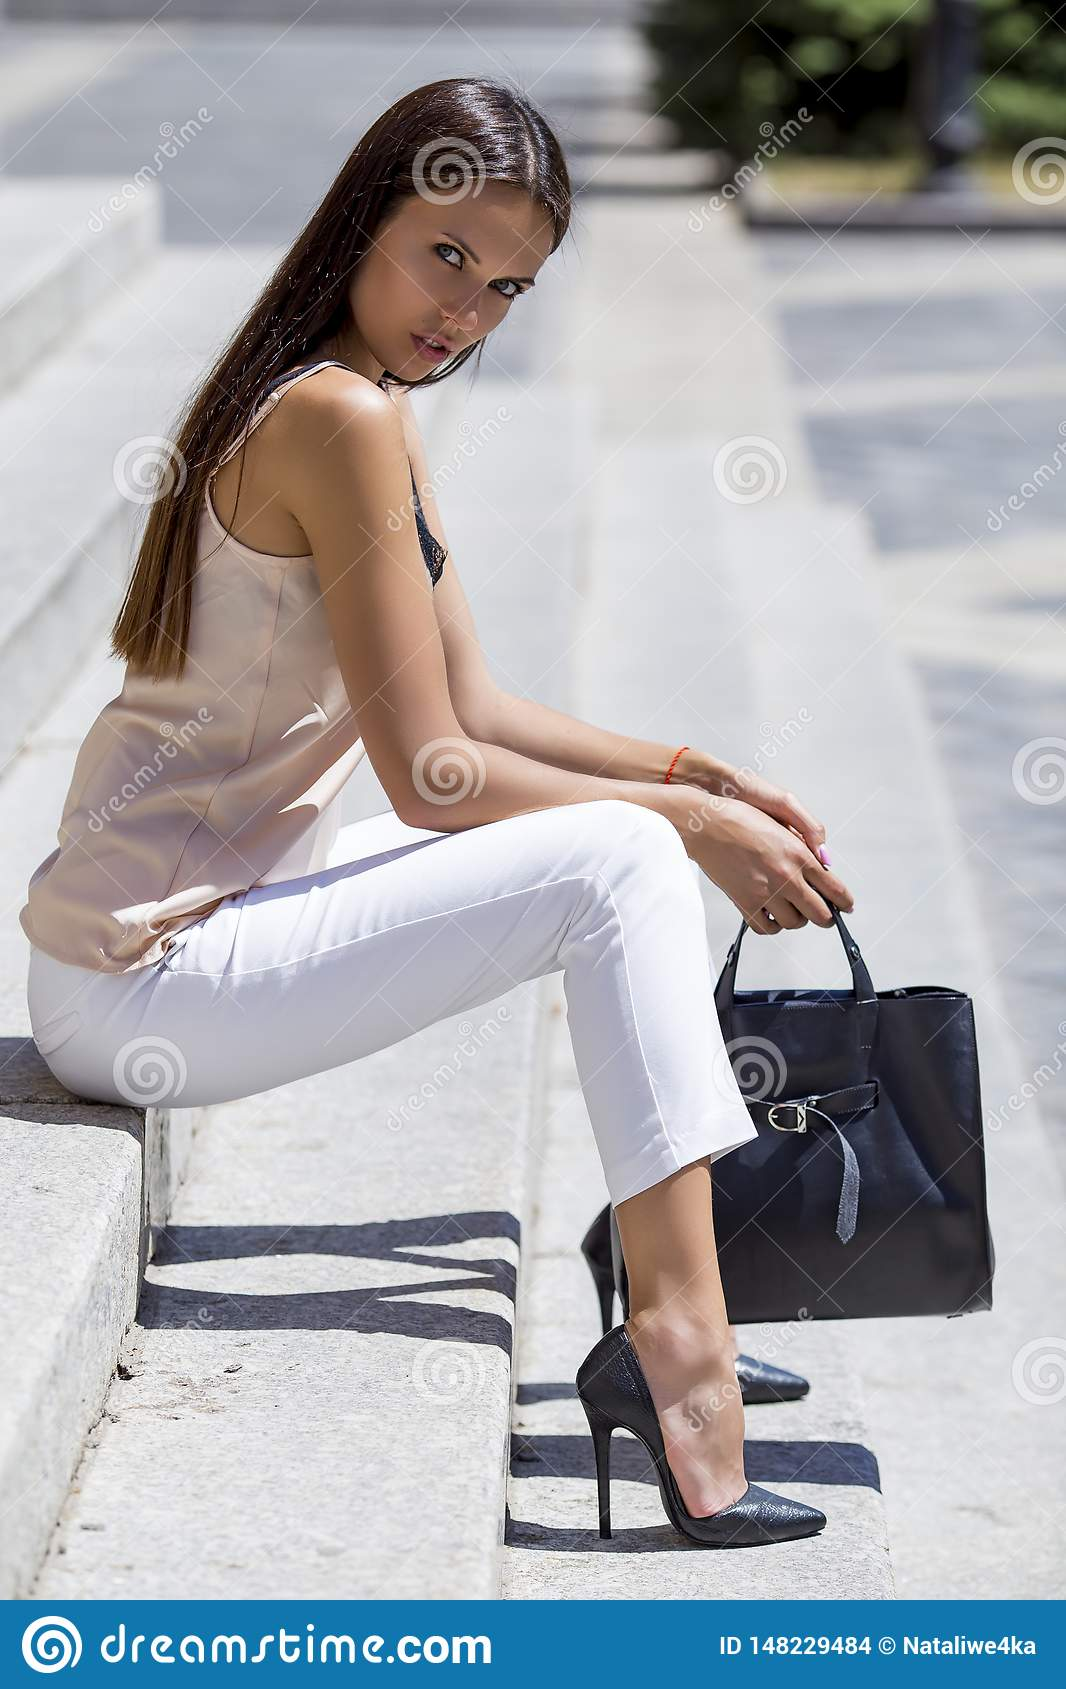 girl sitting on the stairs in chic shoes with a stylish black bag